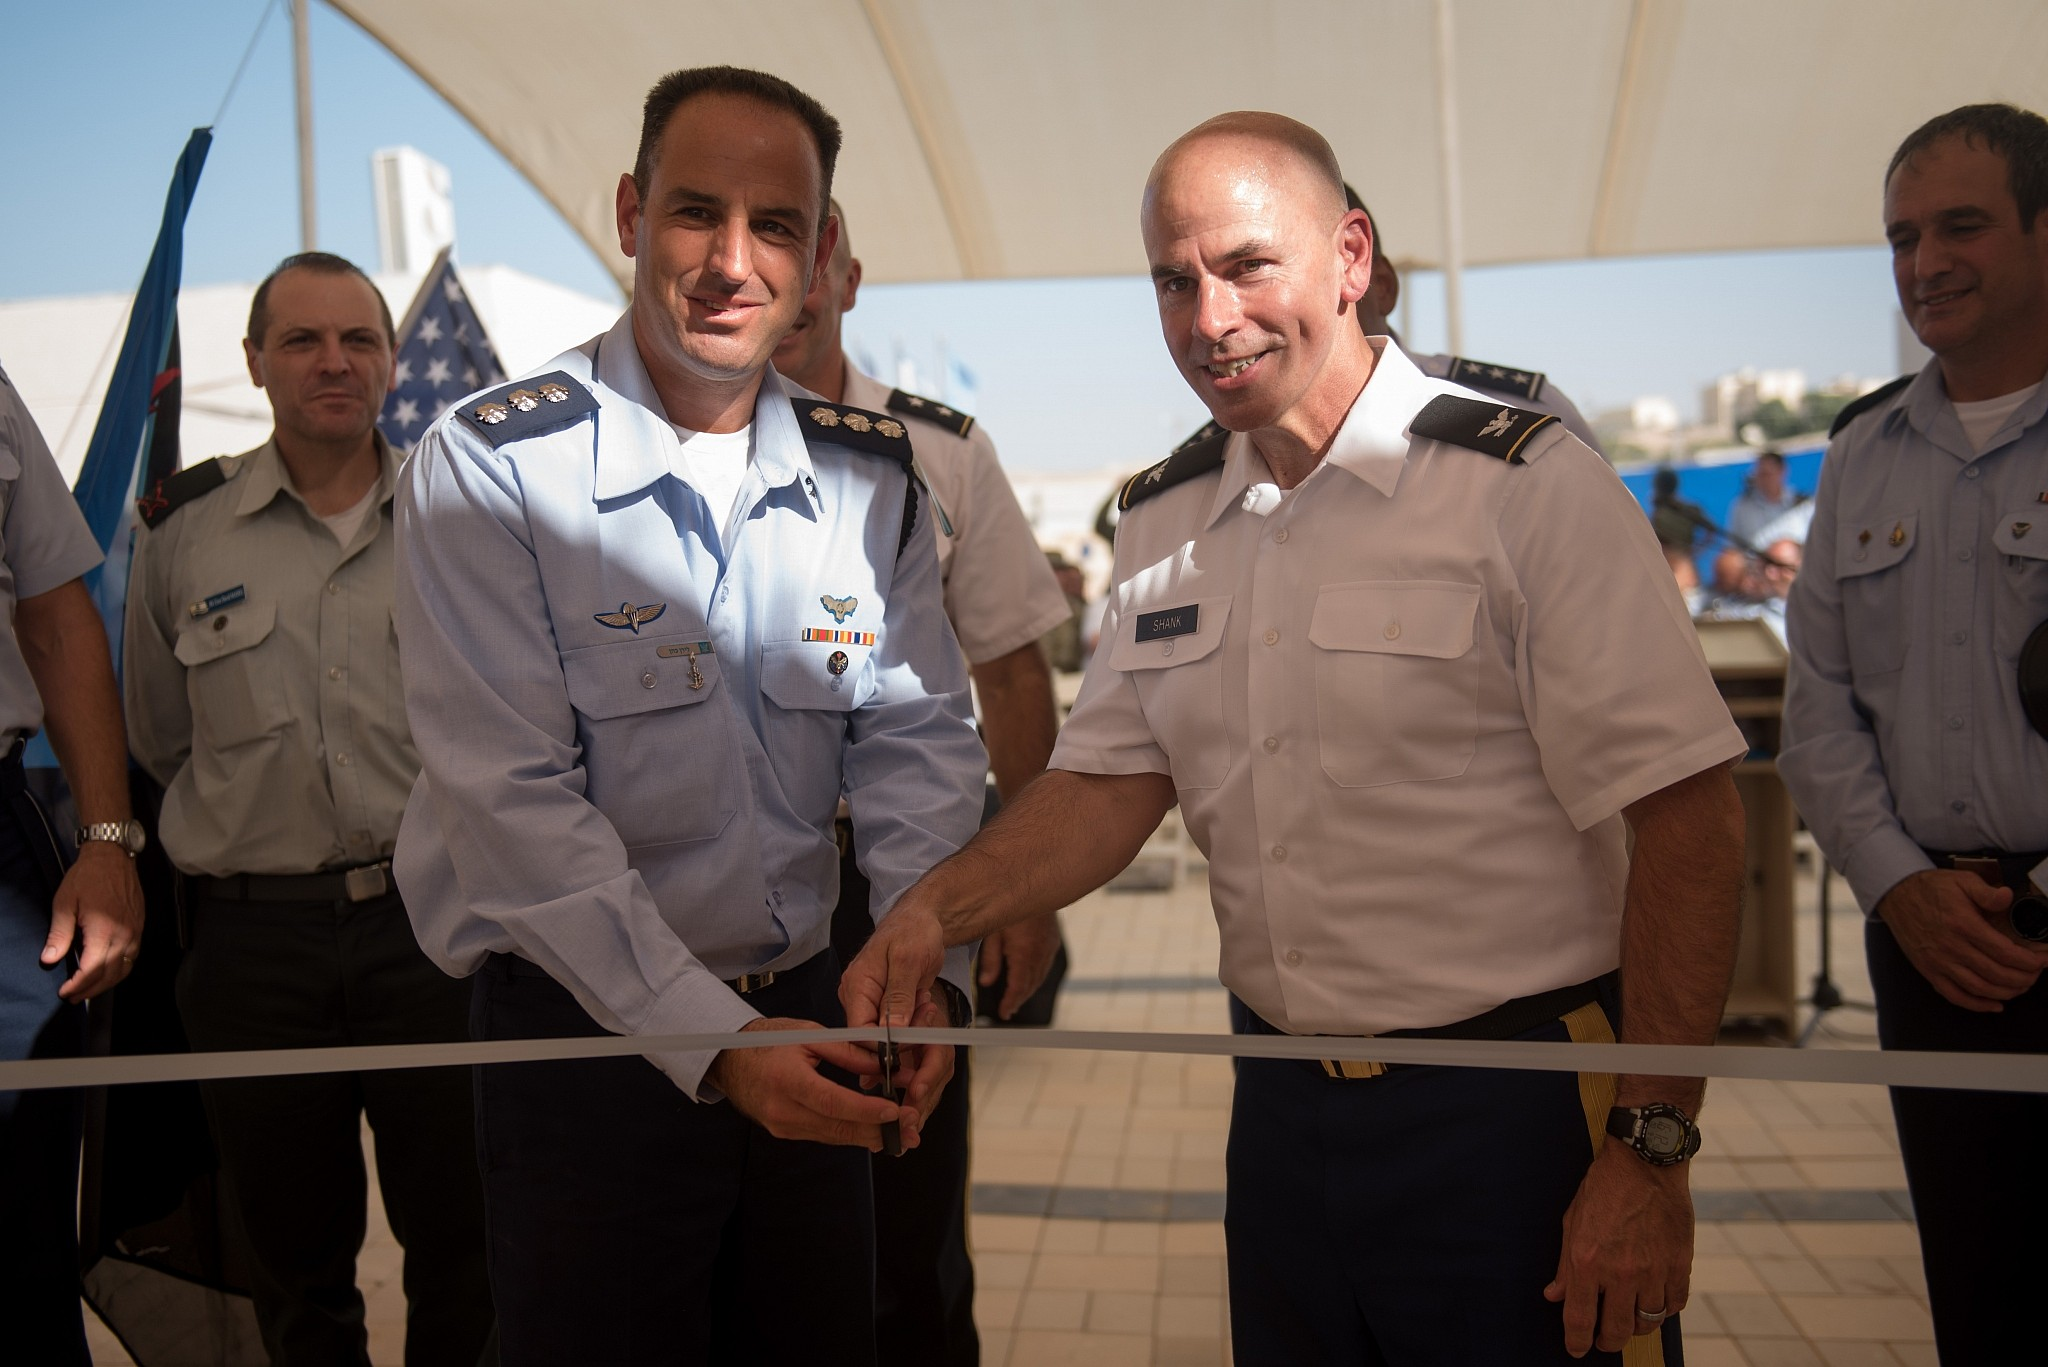 HISTORIC: For First Time, US Military Opens Permanent Army Base in Israel